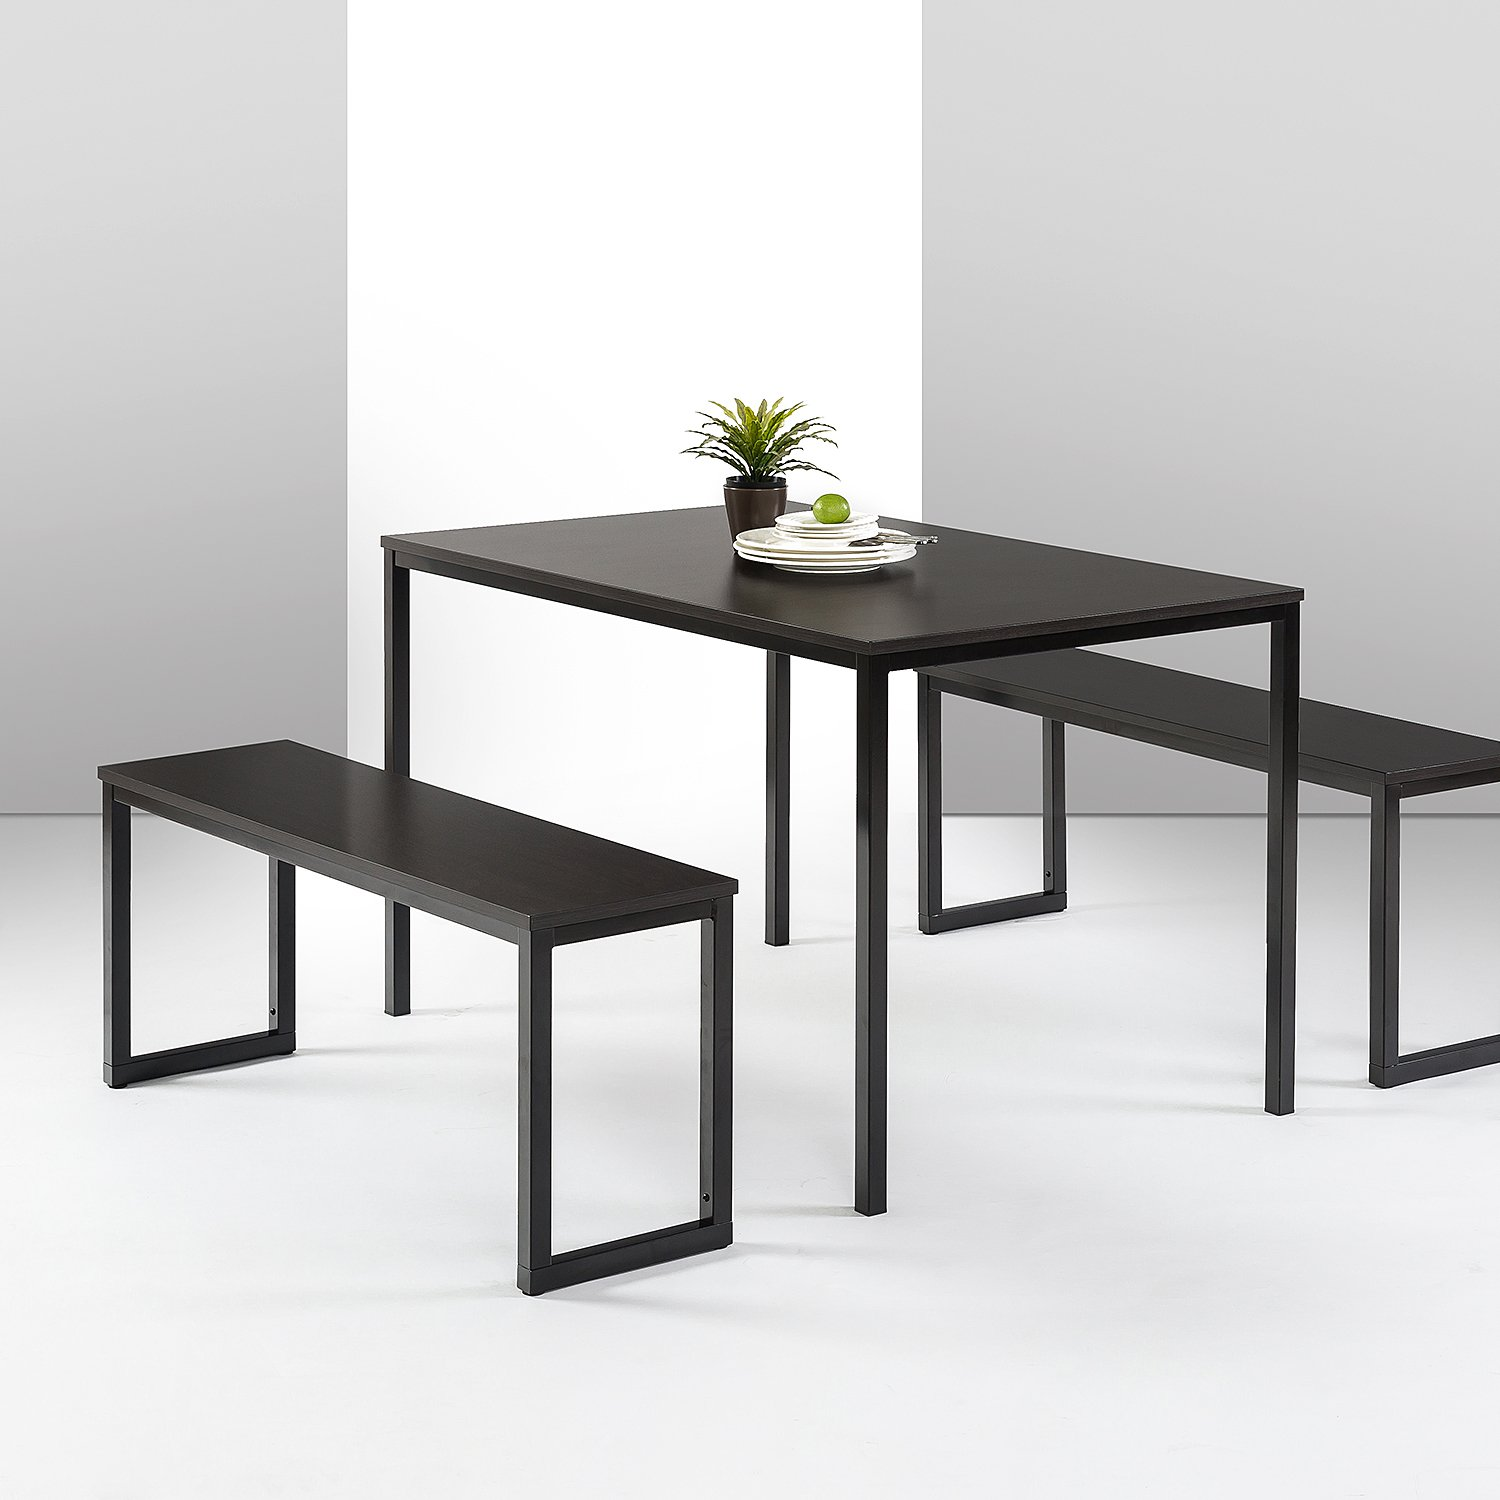 Zinus Louis Modern Studio Collection Soho Dining Table with Two Benches / 3 piece set, Espresso by Zinus